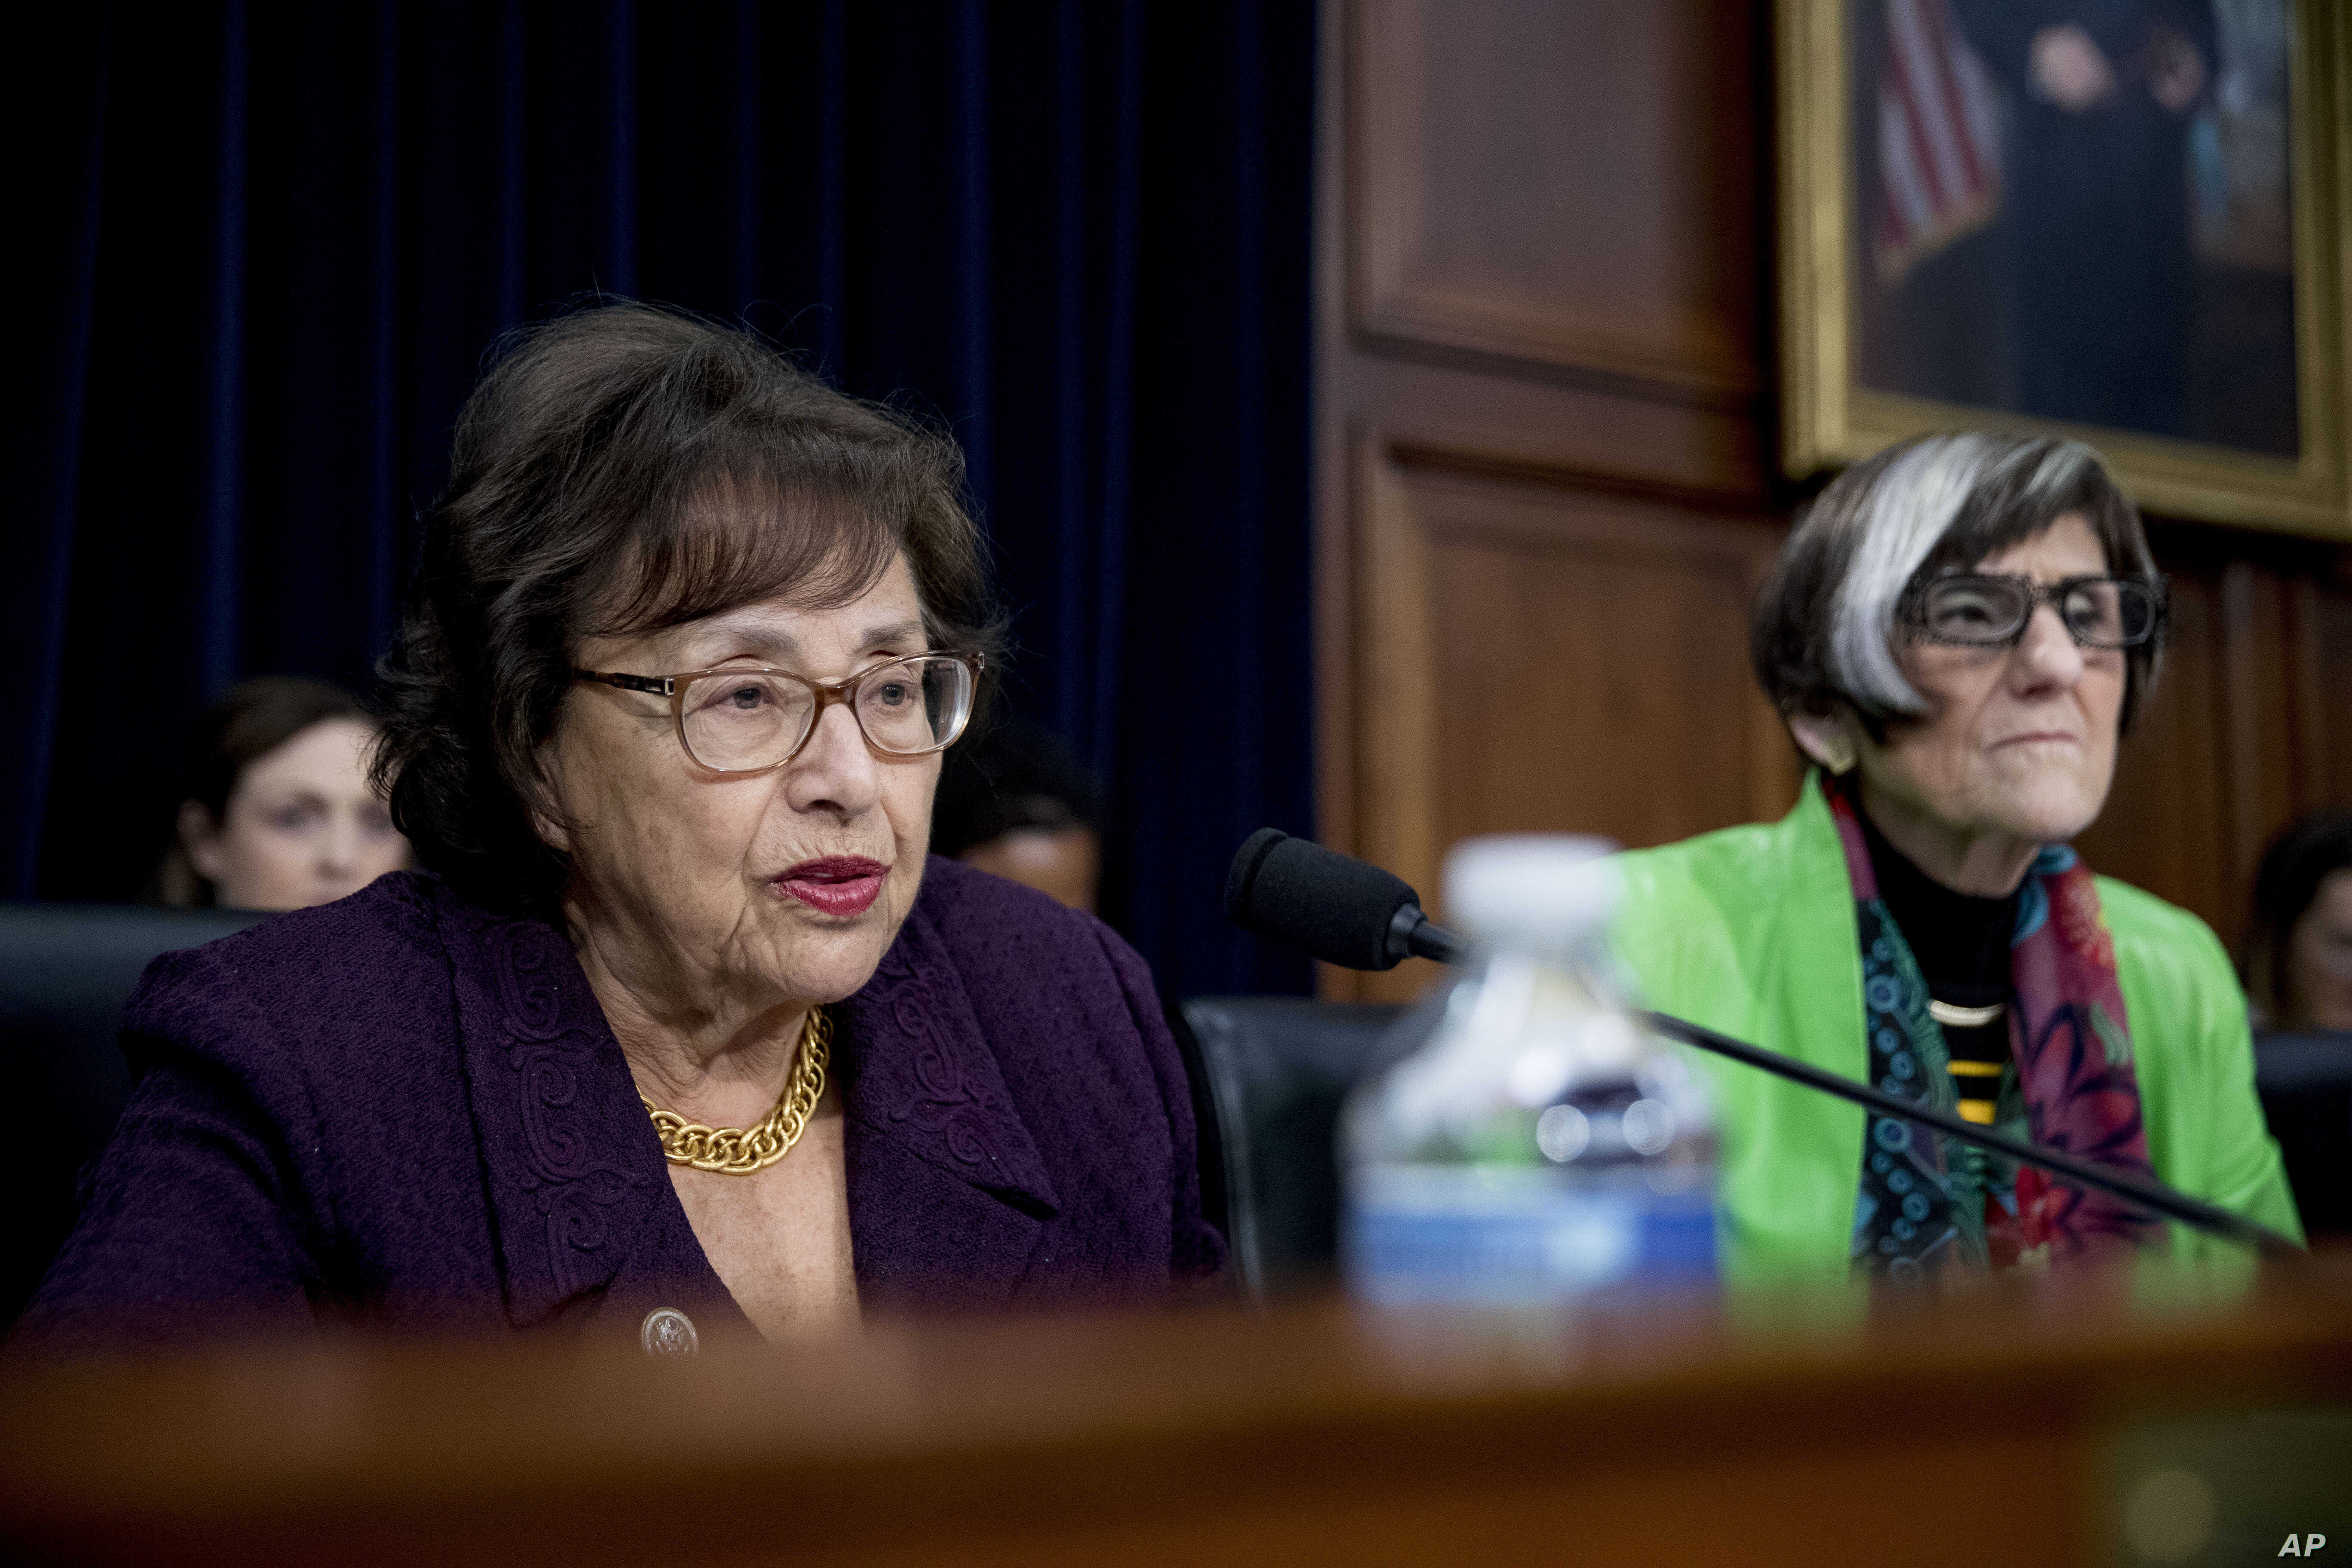 Chairwoman Nita Lowey, D-N.Y., left, accompanied by Rep. Rosa DeLauro, D-Conn., right, speaks as Education Secretary Betsy DeVos appears before a House Appropriations subcommittee hearing on budget on Capitol Hill in Washington, March 26, 2019.